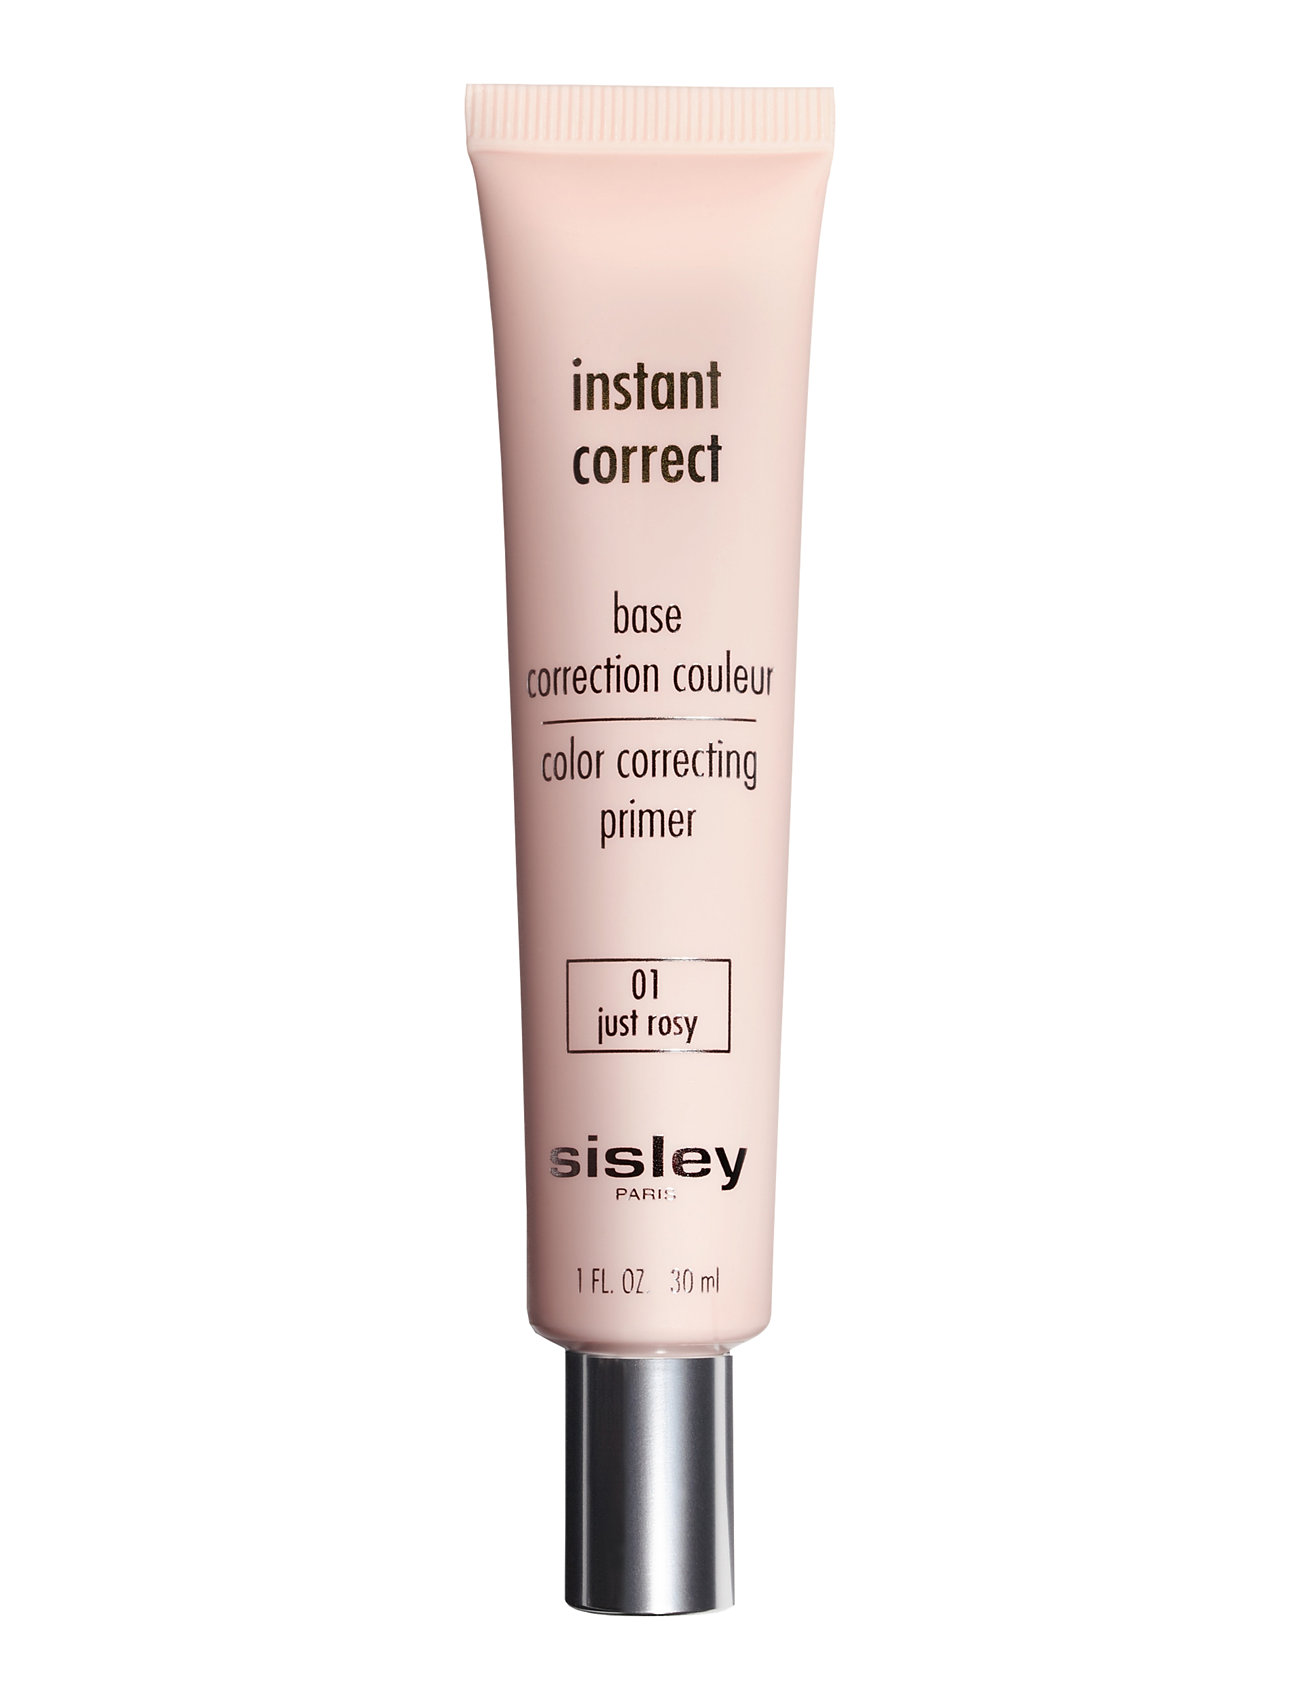 Sisley INSTANT CORRECT 1 JUST ROSY 30ml - 1 JUST ROSY